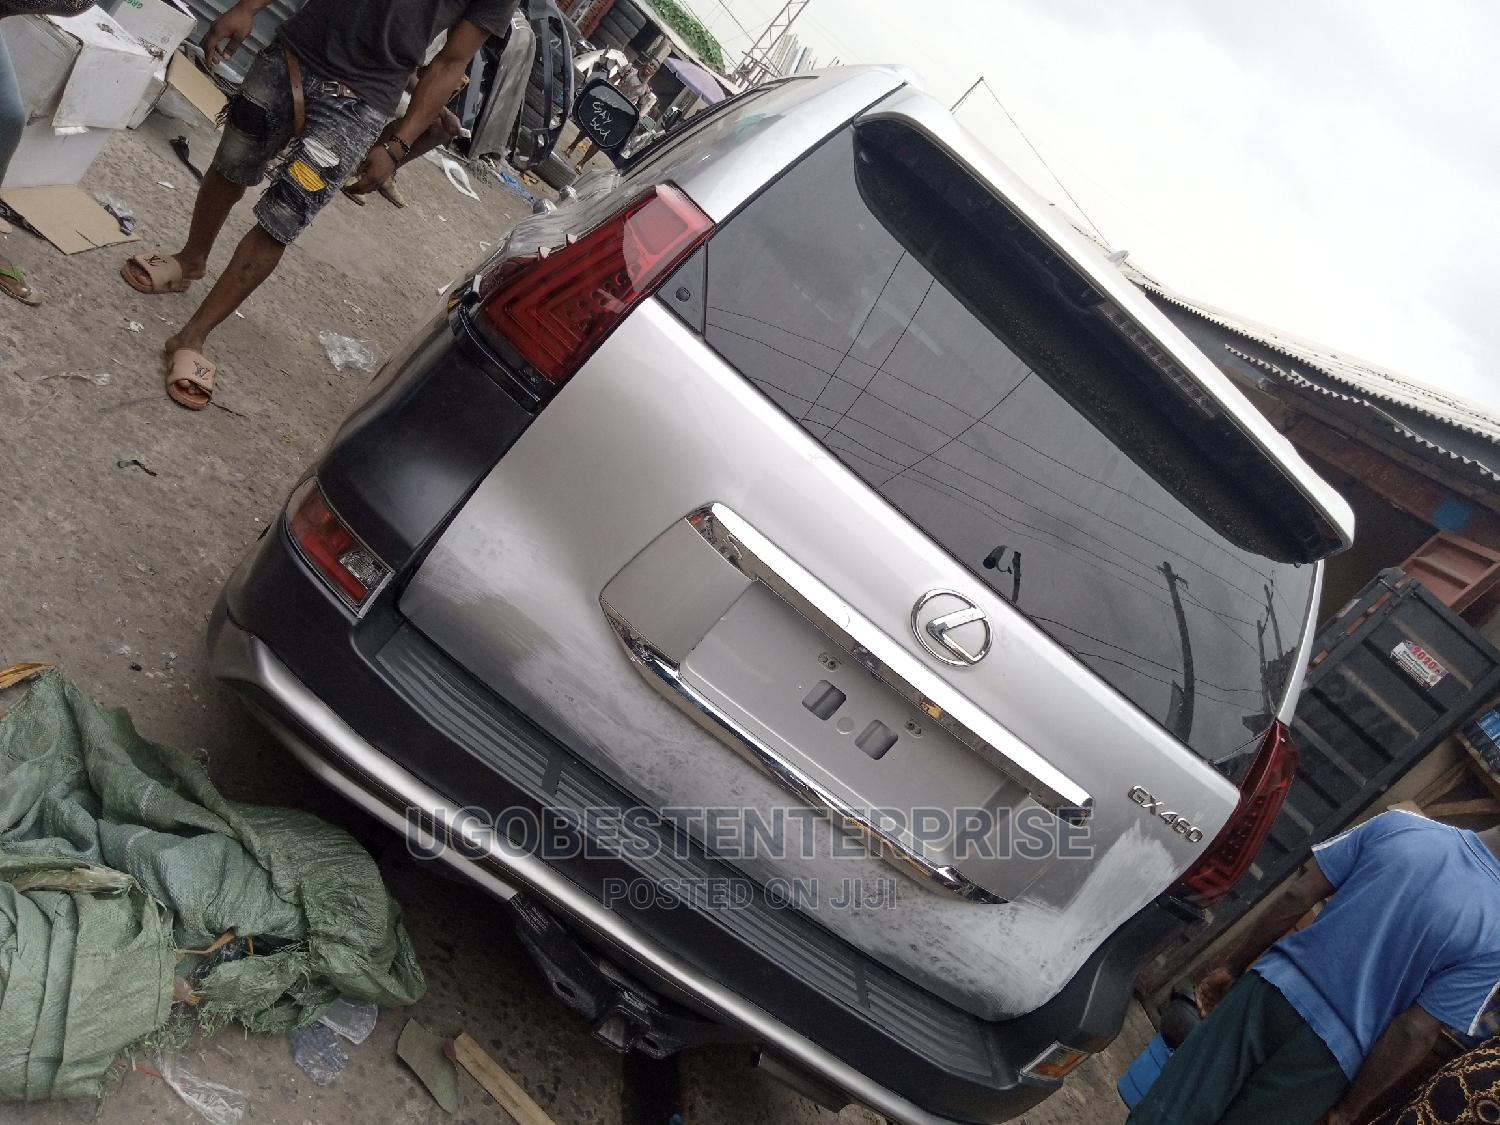 Upgrade Your Lexus Gx460 From 2010 to 2021 Model   Automotive Services for sale in Mushin, Lagos State, Nigeria